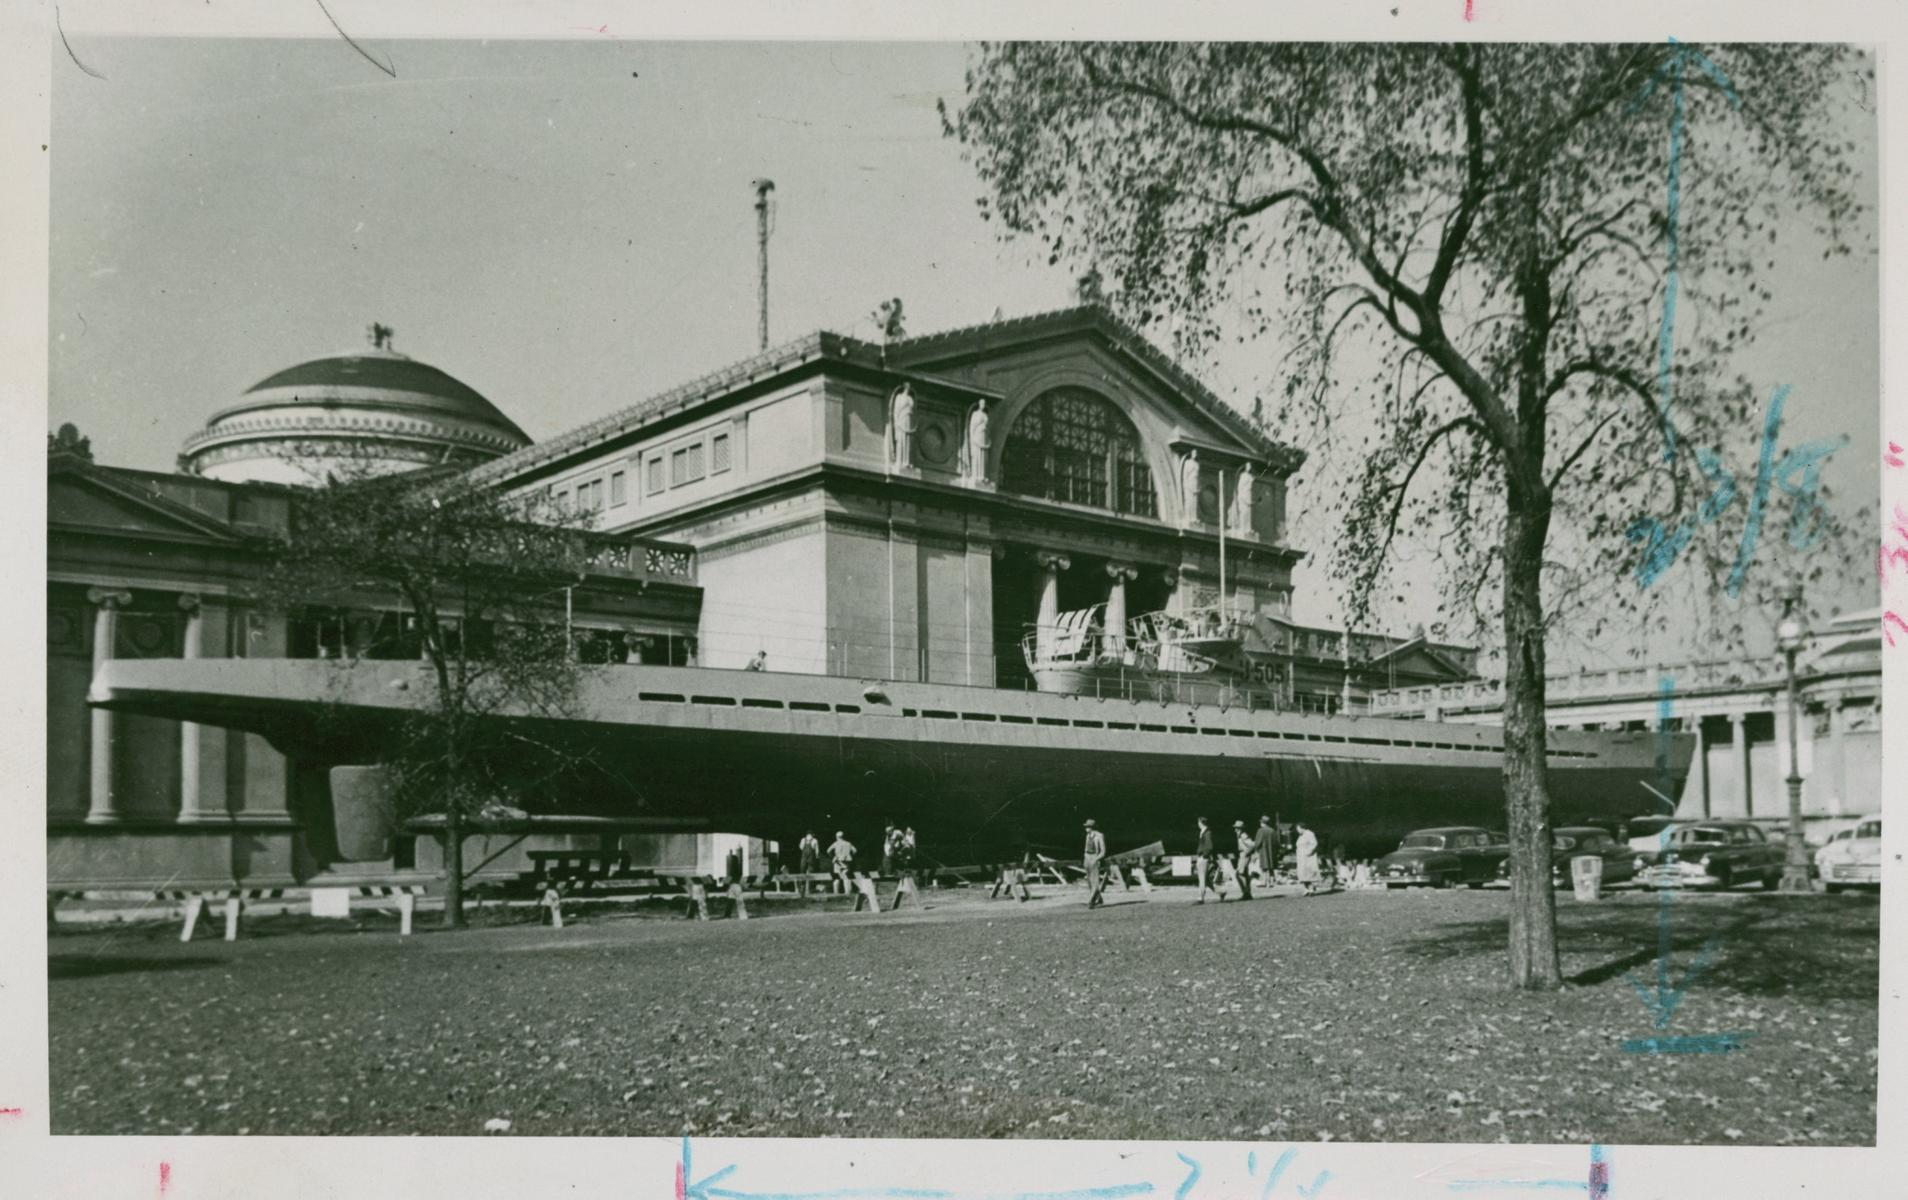 Museum of Science and Industry, Chicago, 1960